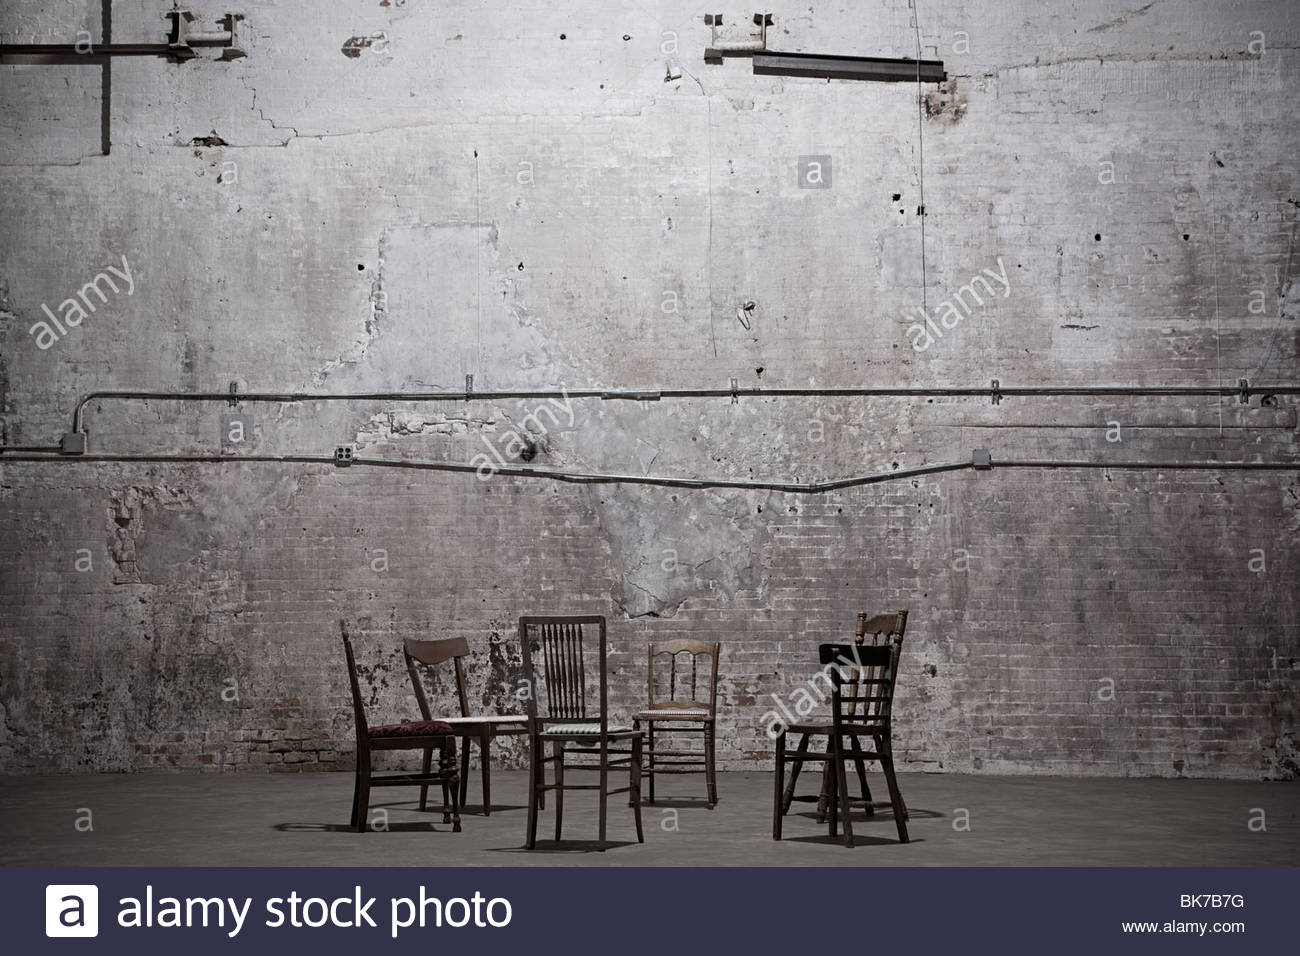 Chairs in empty warehouse - Stock Image